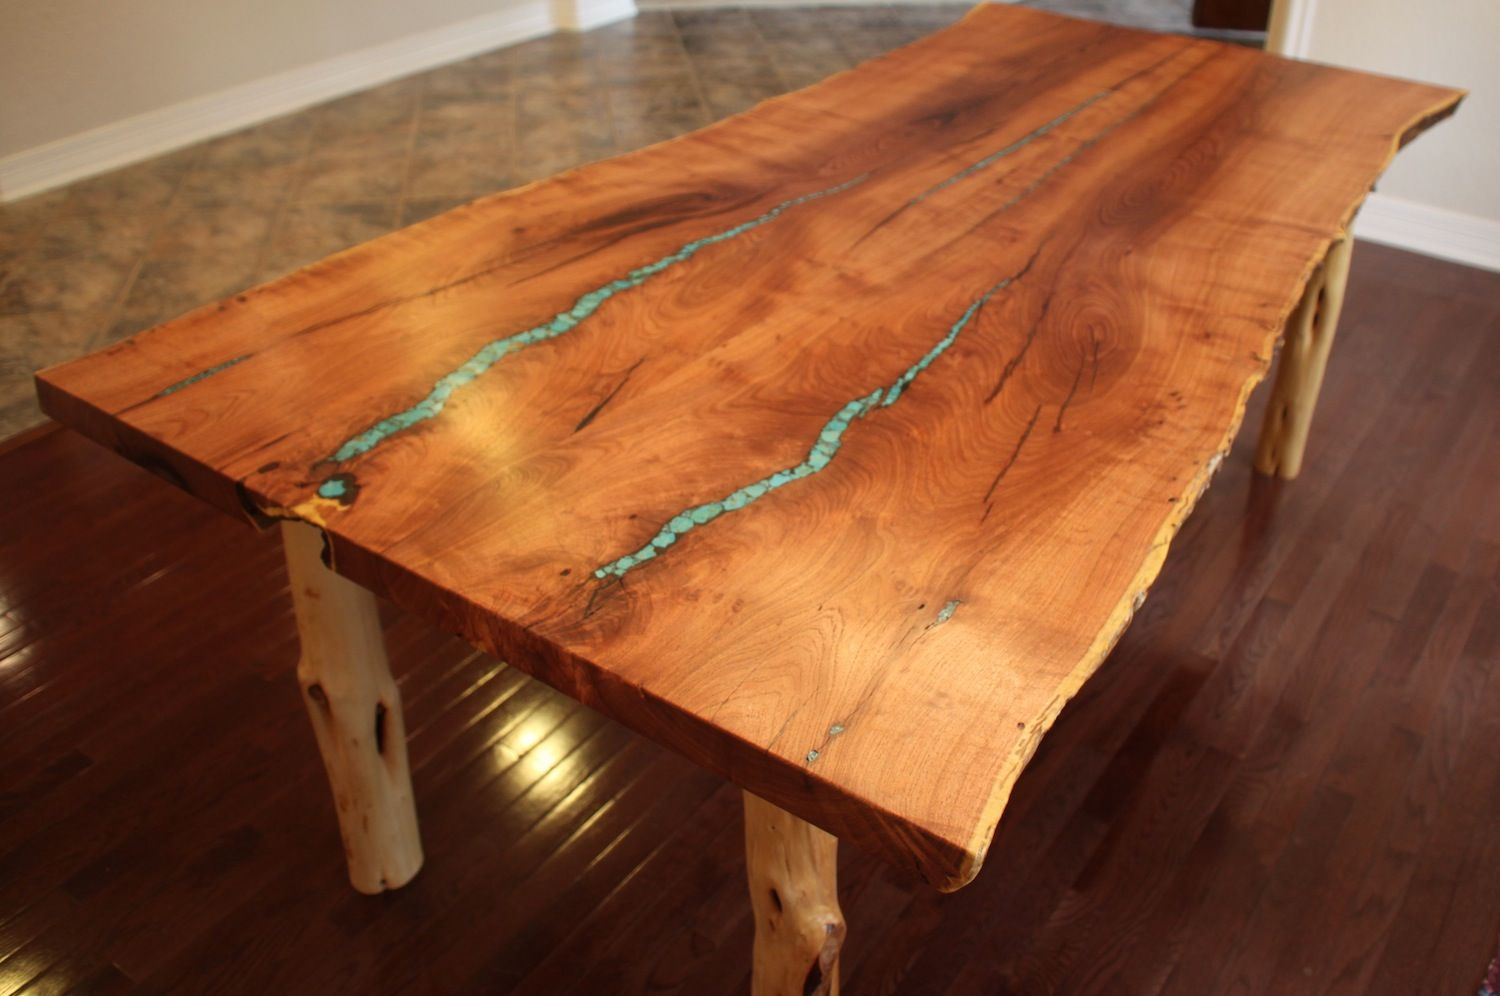 Custom Made Turquoise Inlay Mesquite Dining Table By Aaron Smith Woodworker Custommade